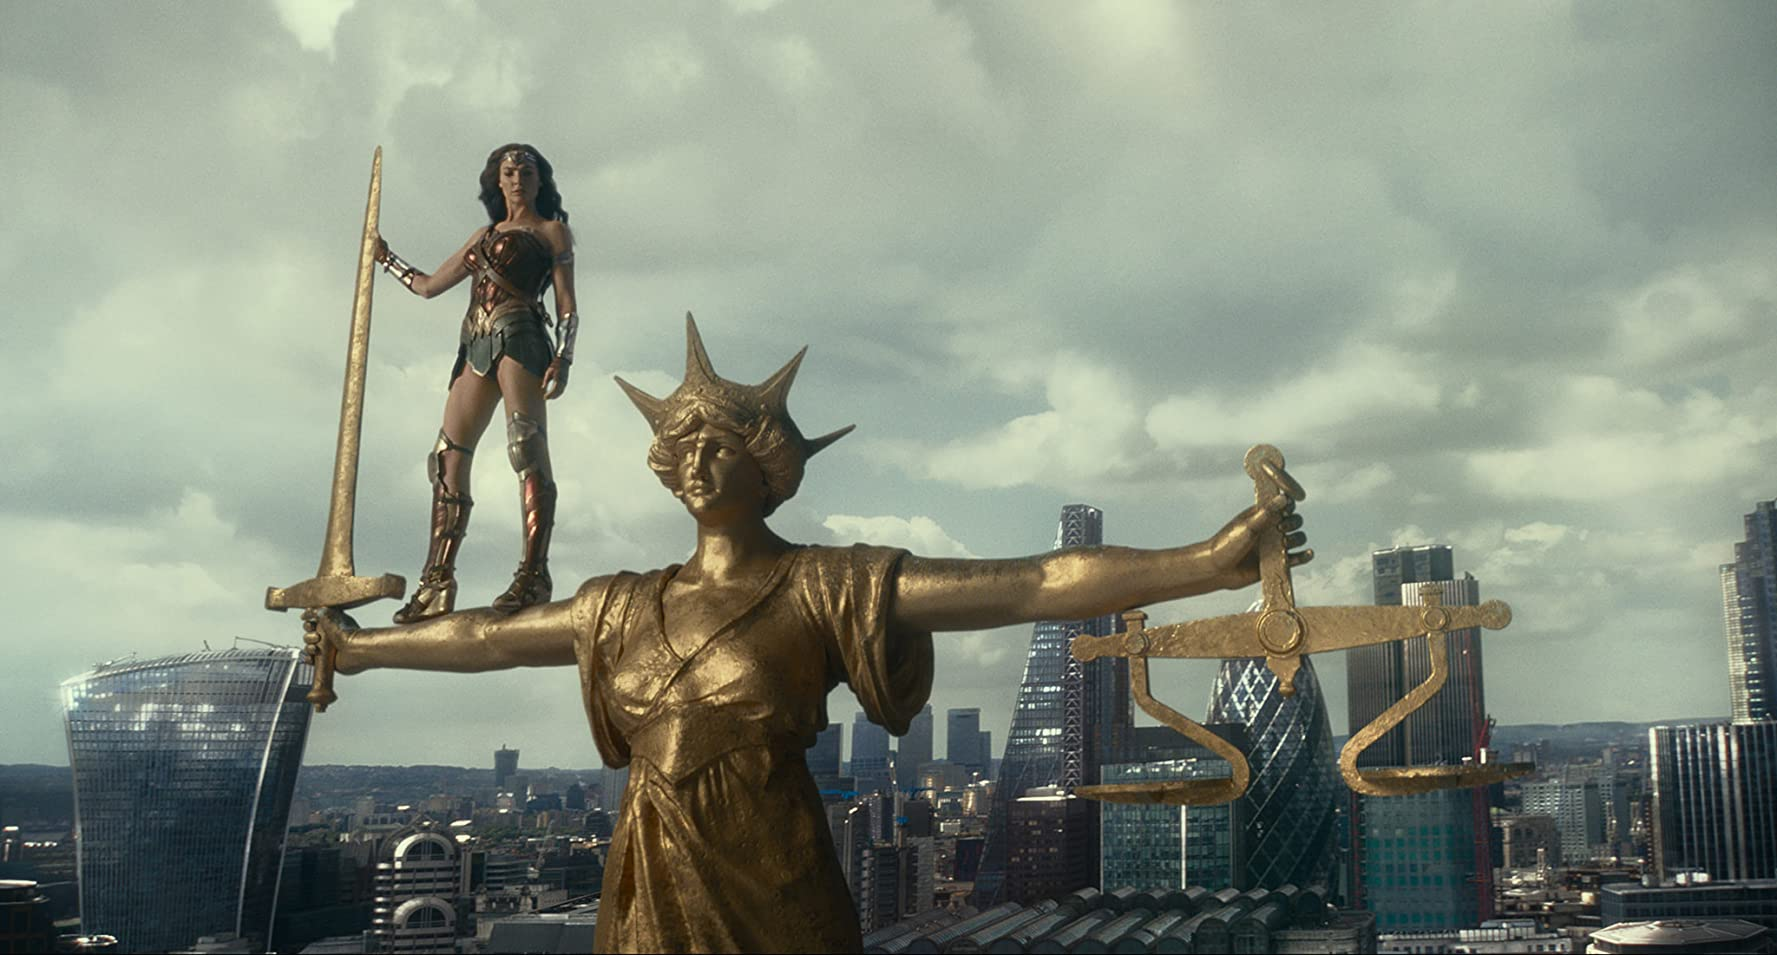 Gal Gadot in Justice League (2017)